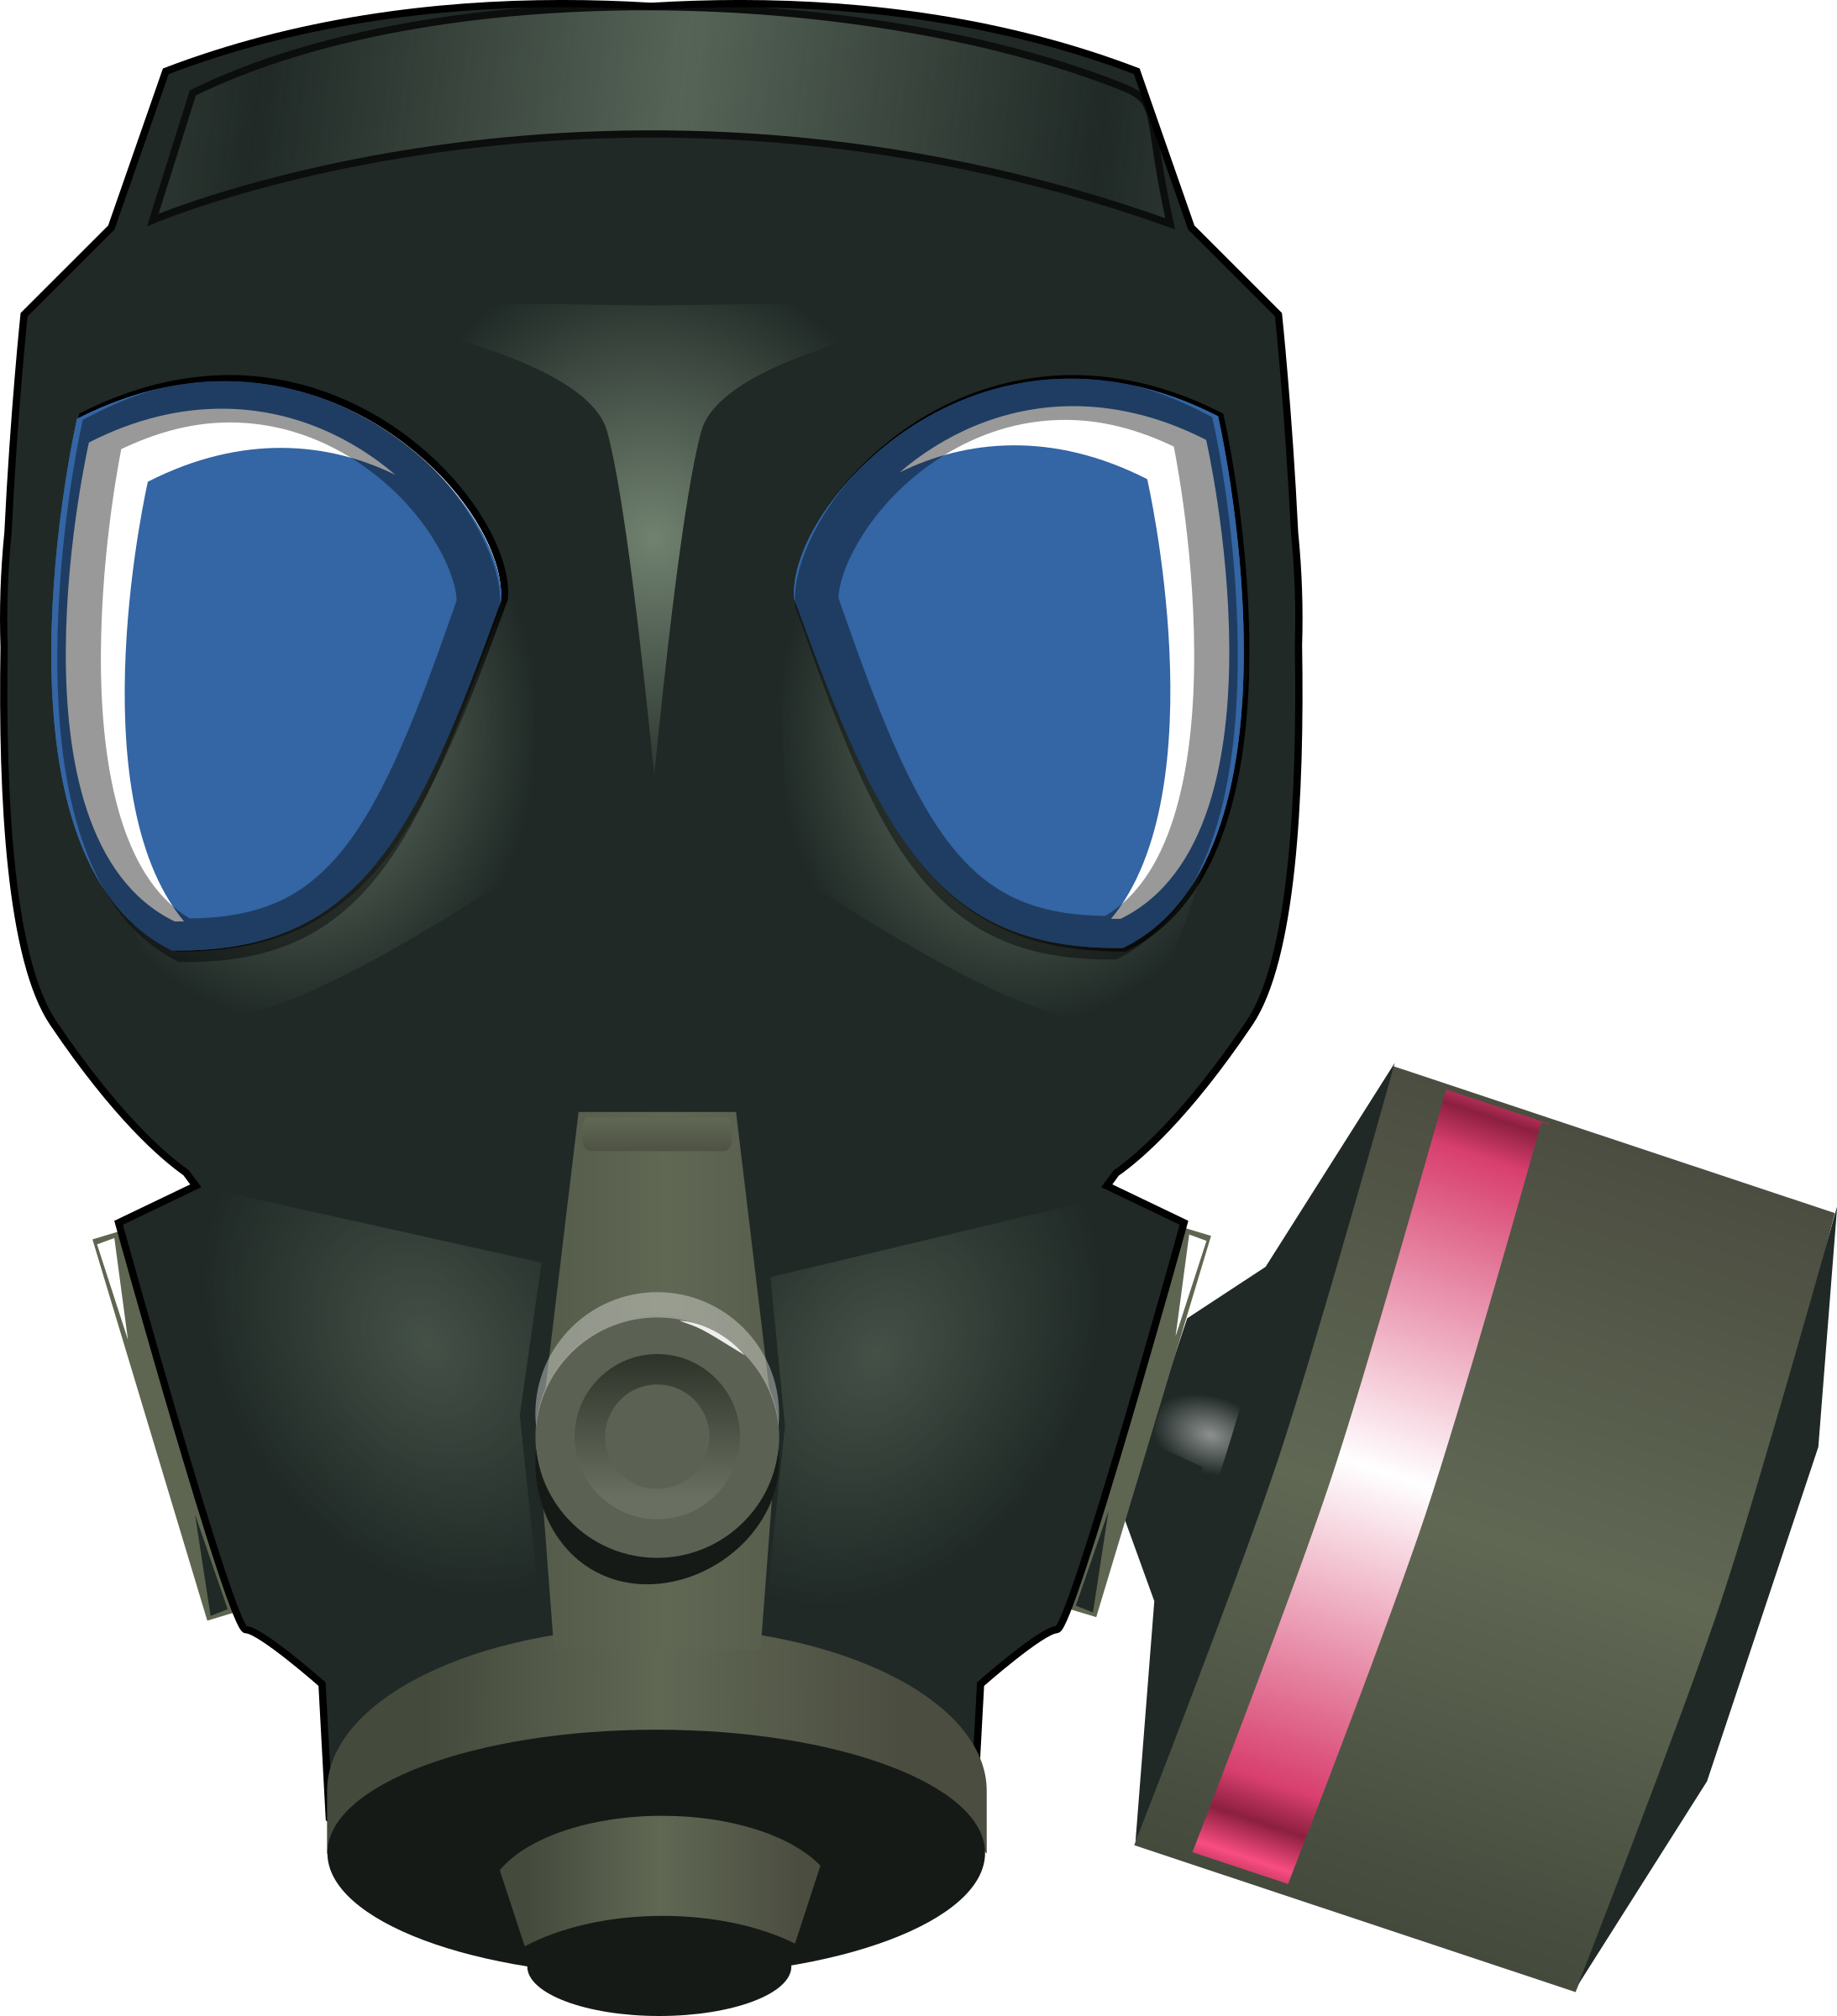 Gas Mask clipart #6, Download drawings